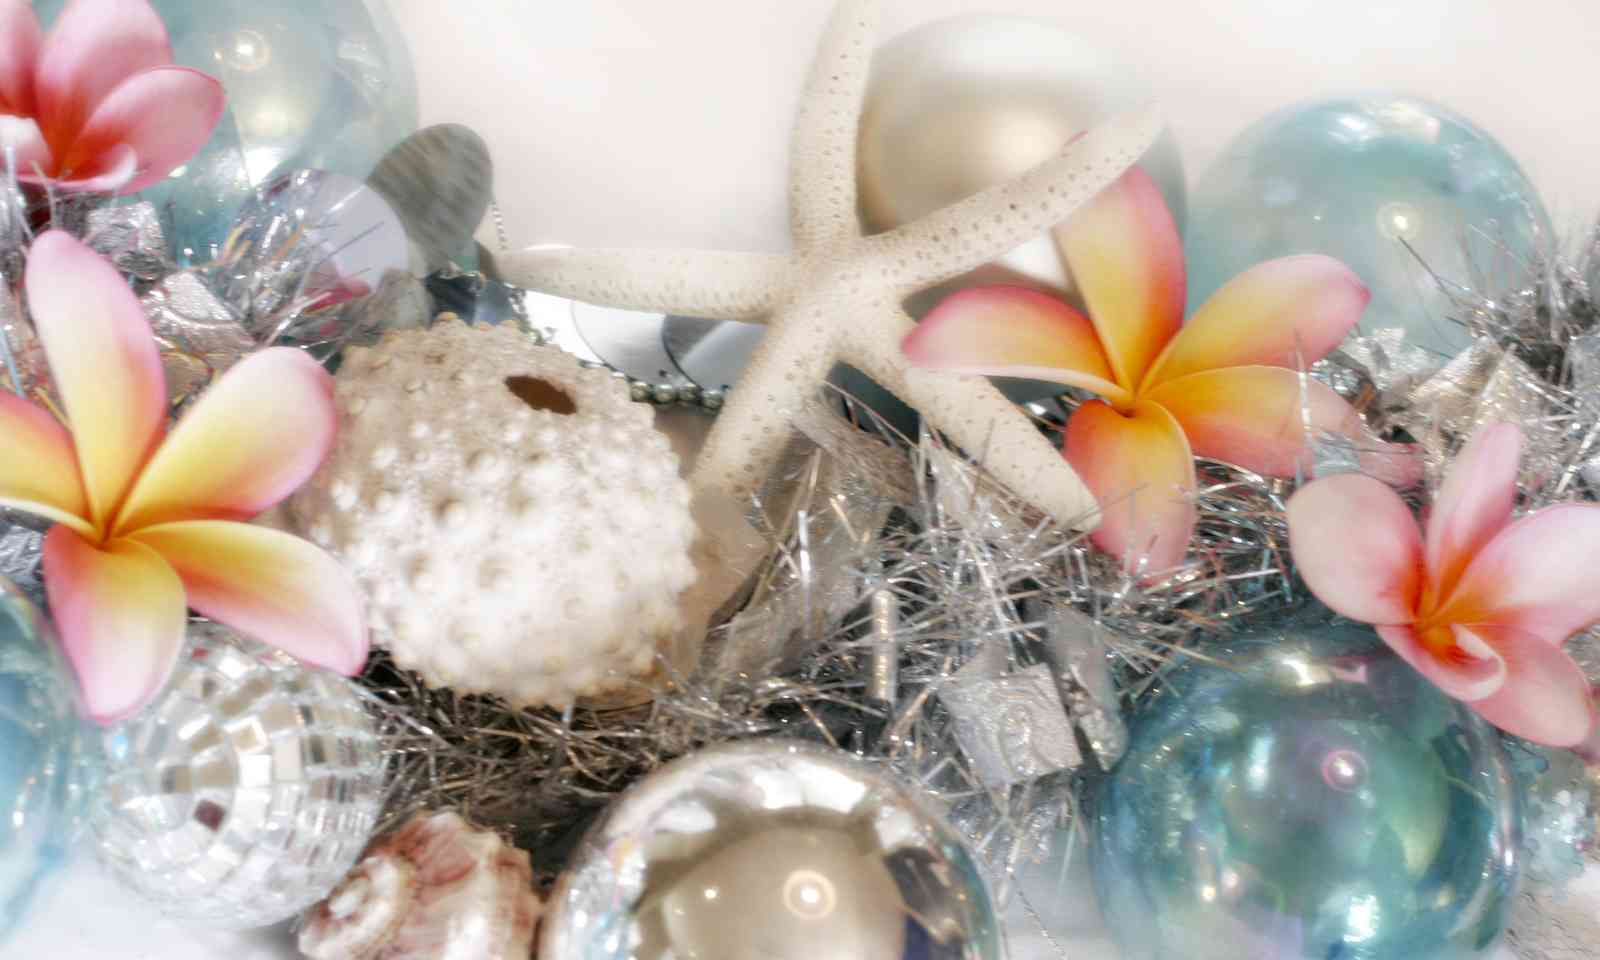 Tropical Christmas decorations (Dreamstime)